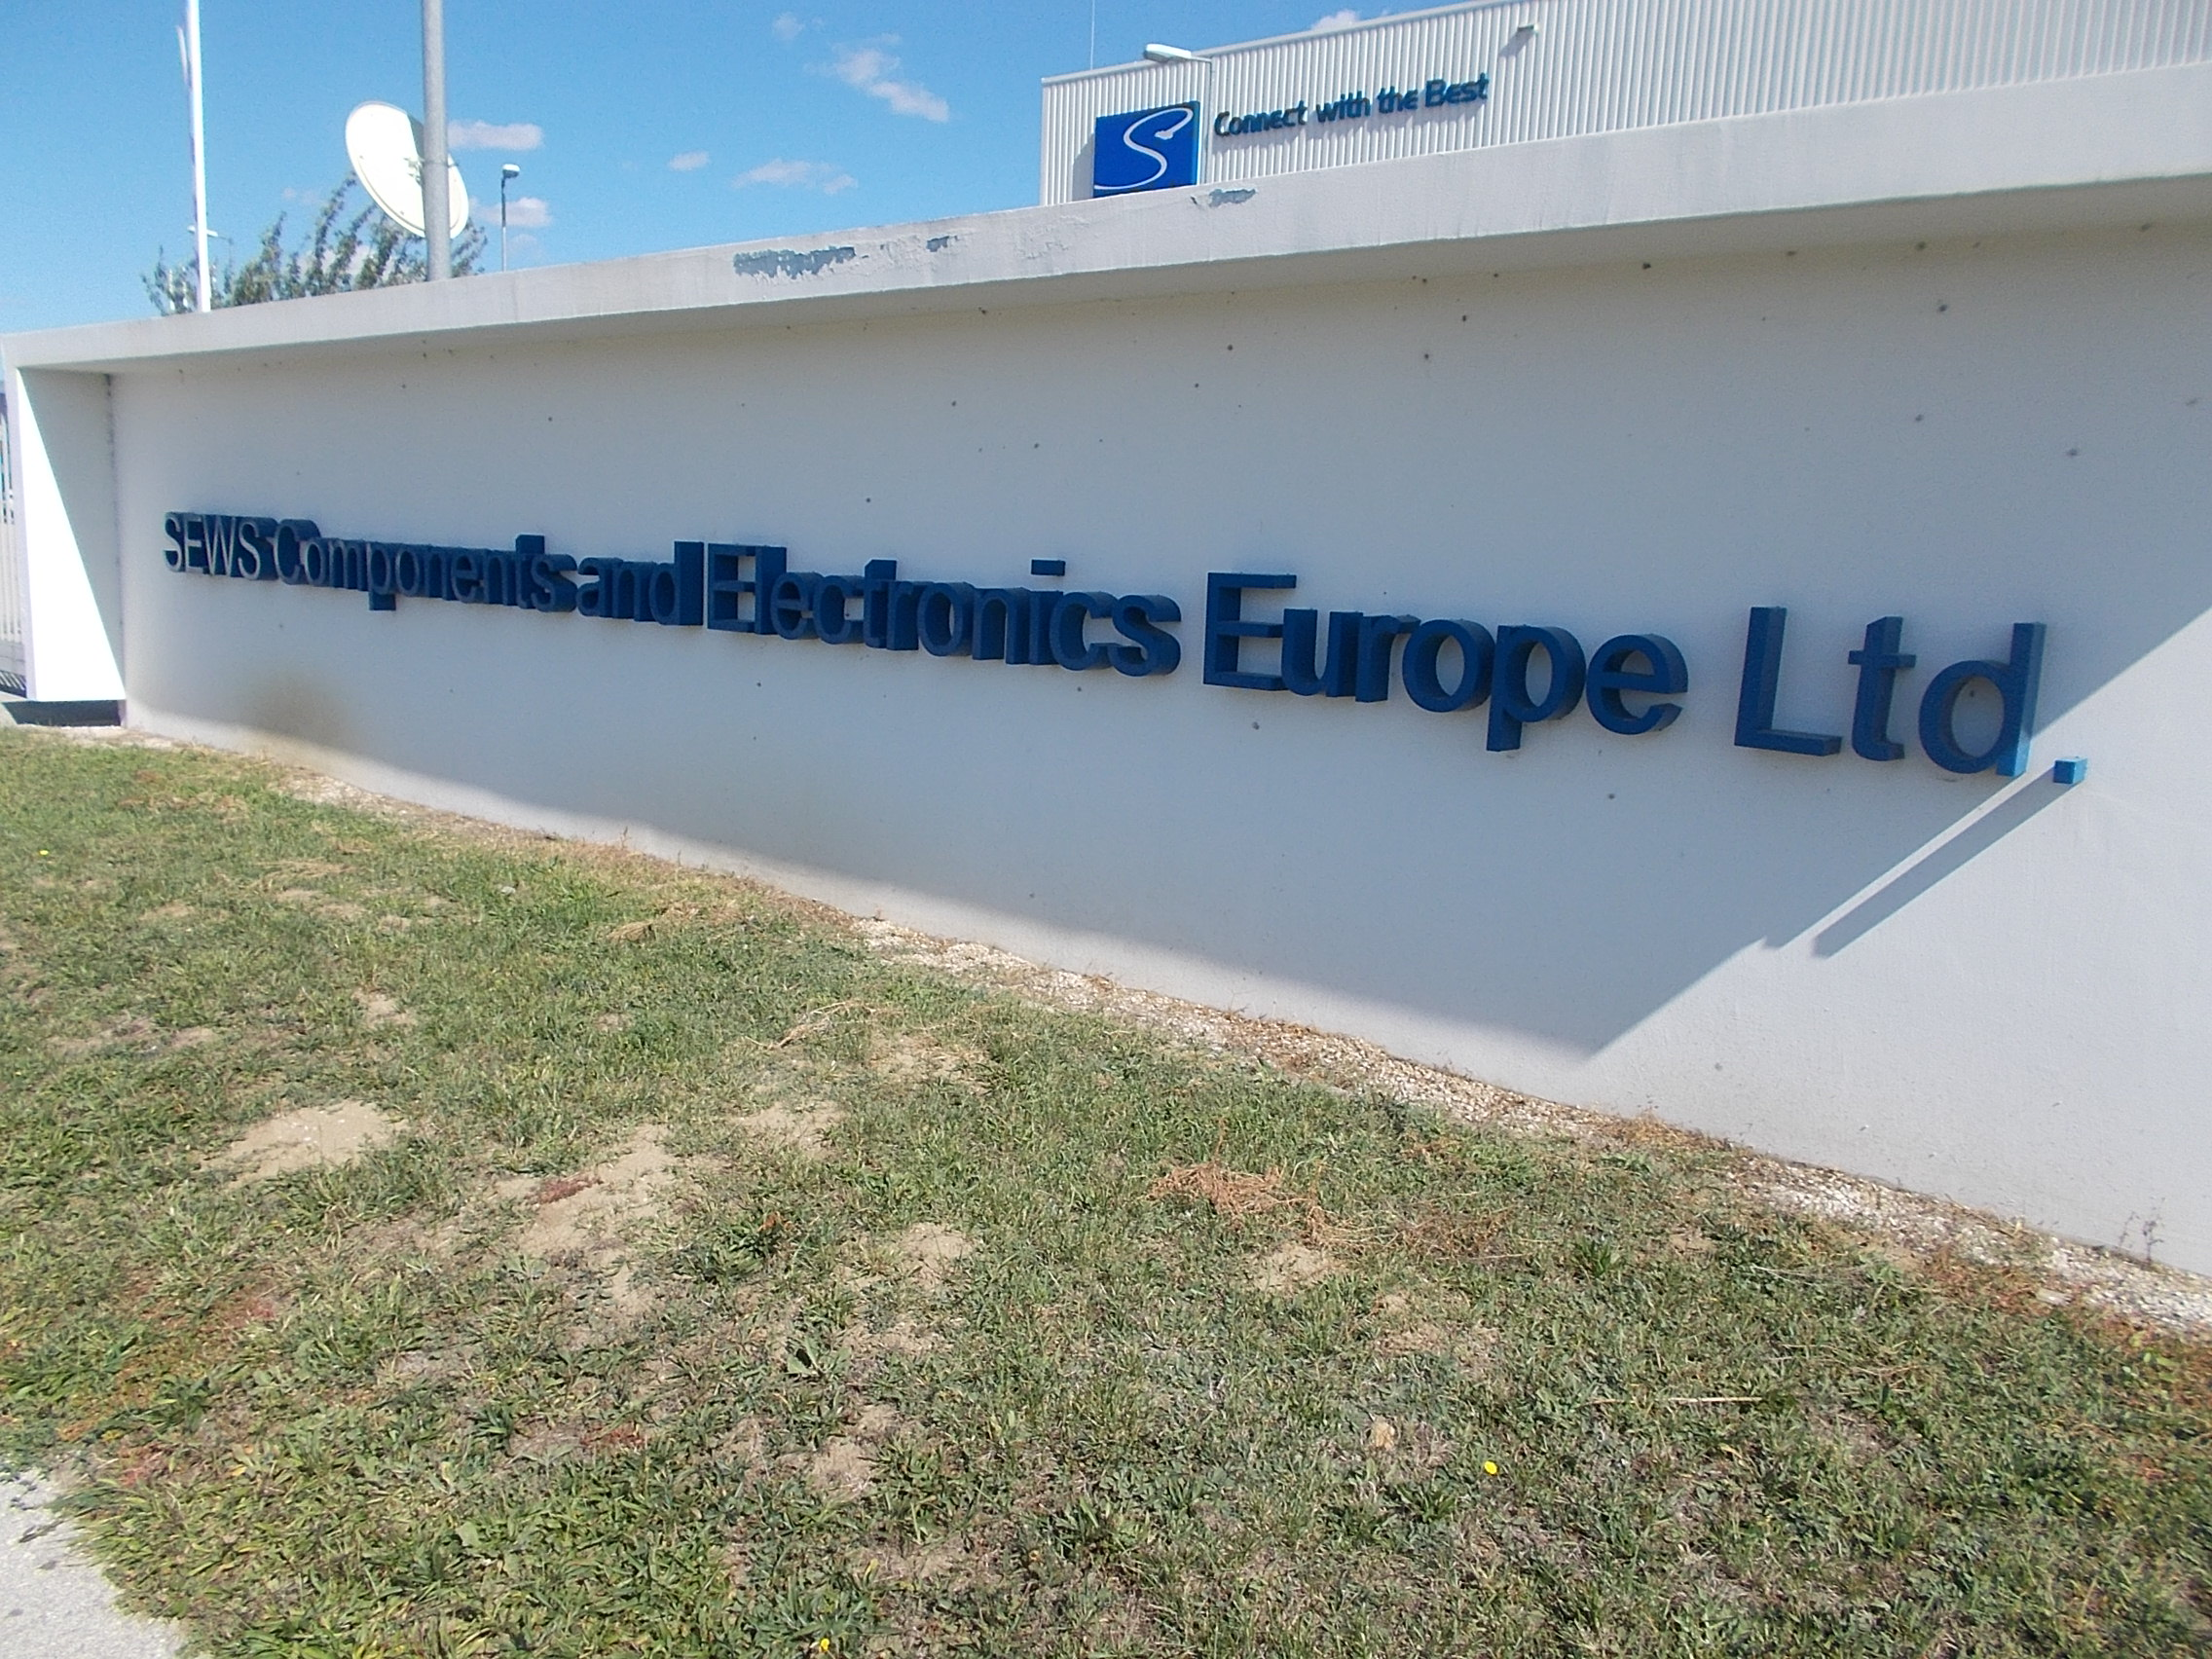 Filesews Components And Electronics Europe Ltd Sign 2017 Mr Sumitomo Electric Wiring Systems